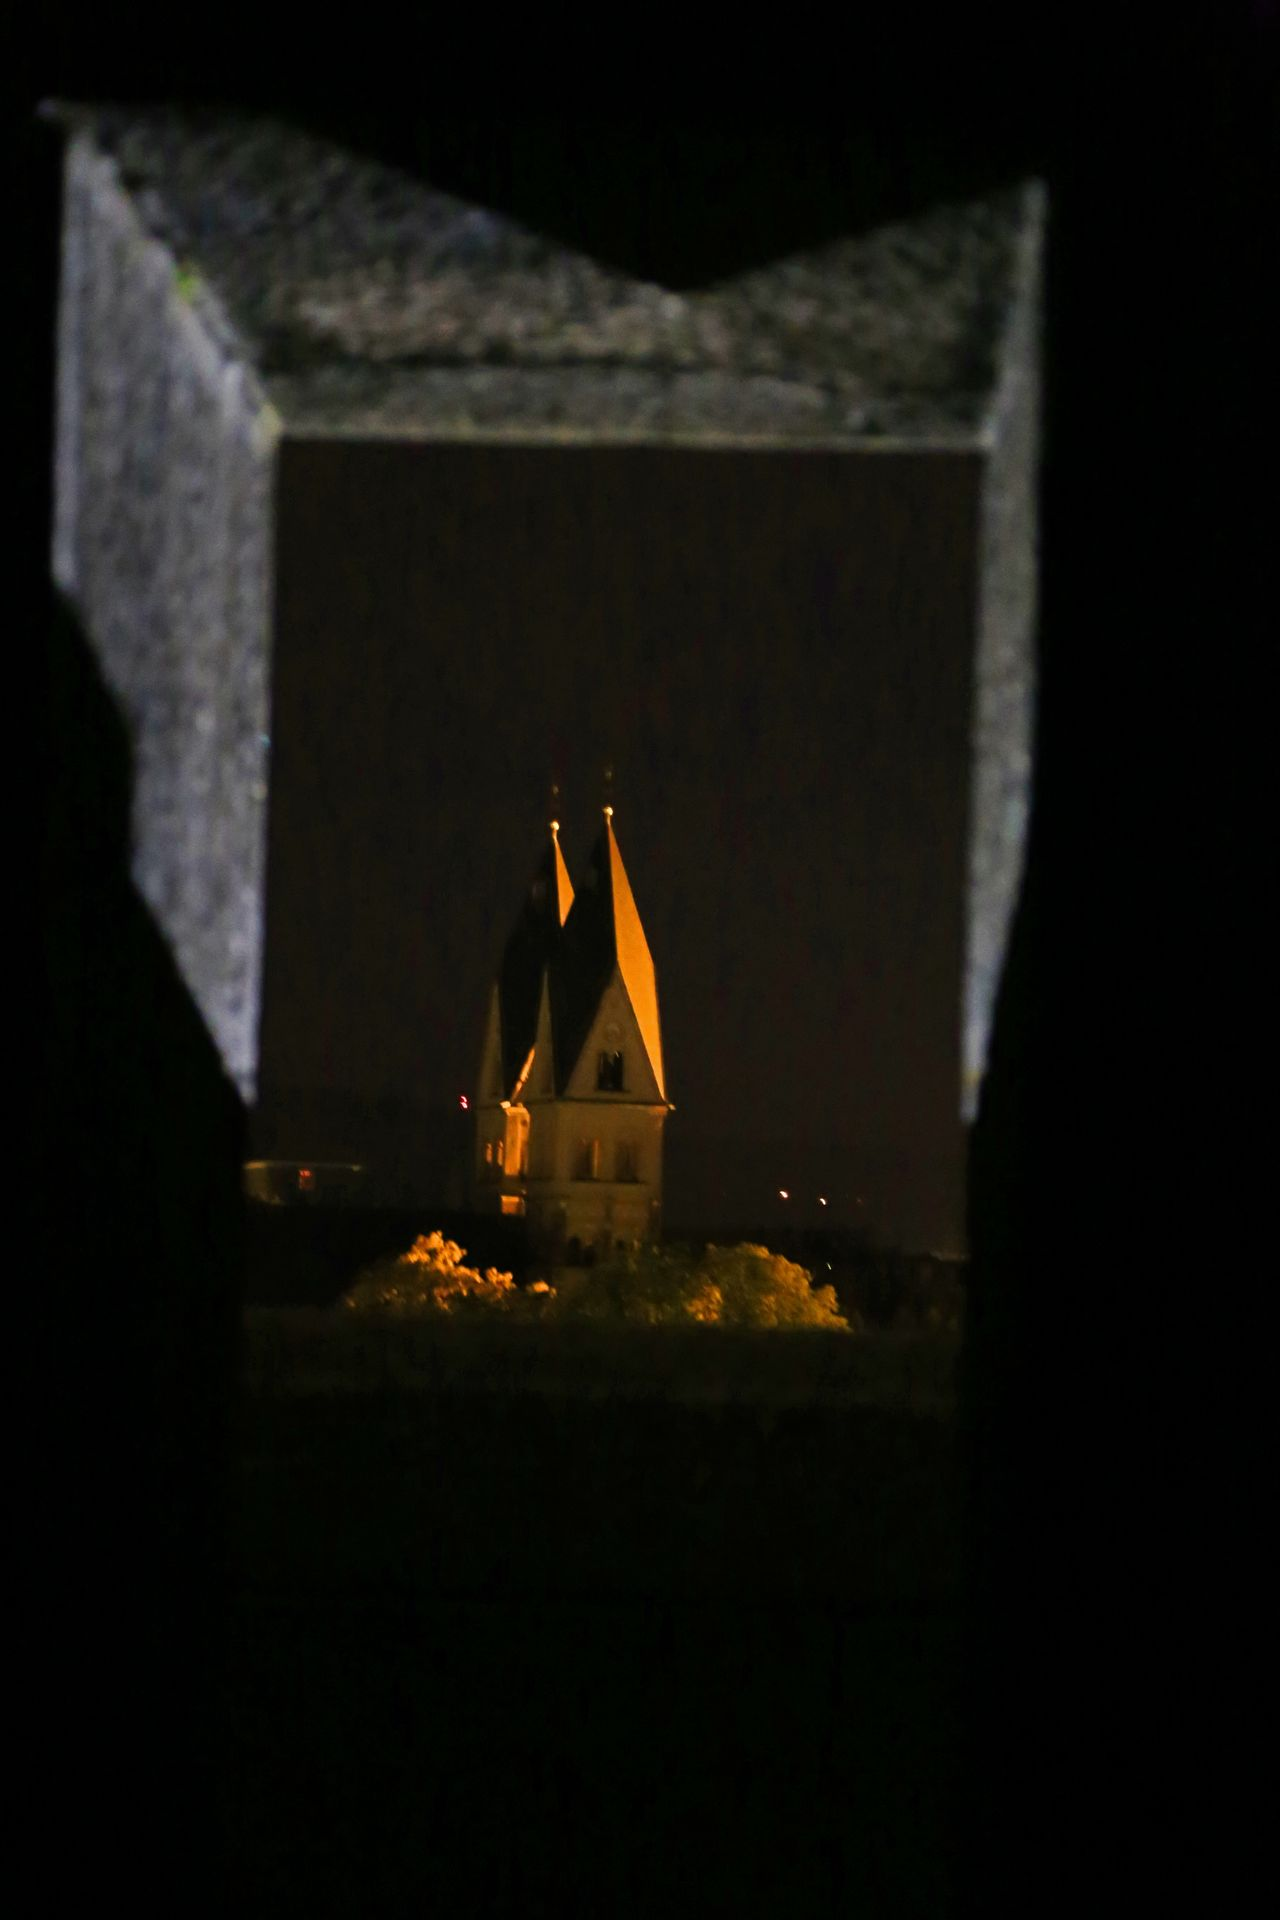 Church Church Towers Illuminated Illumination Indoors  Night No People Perspective Window